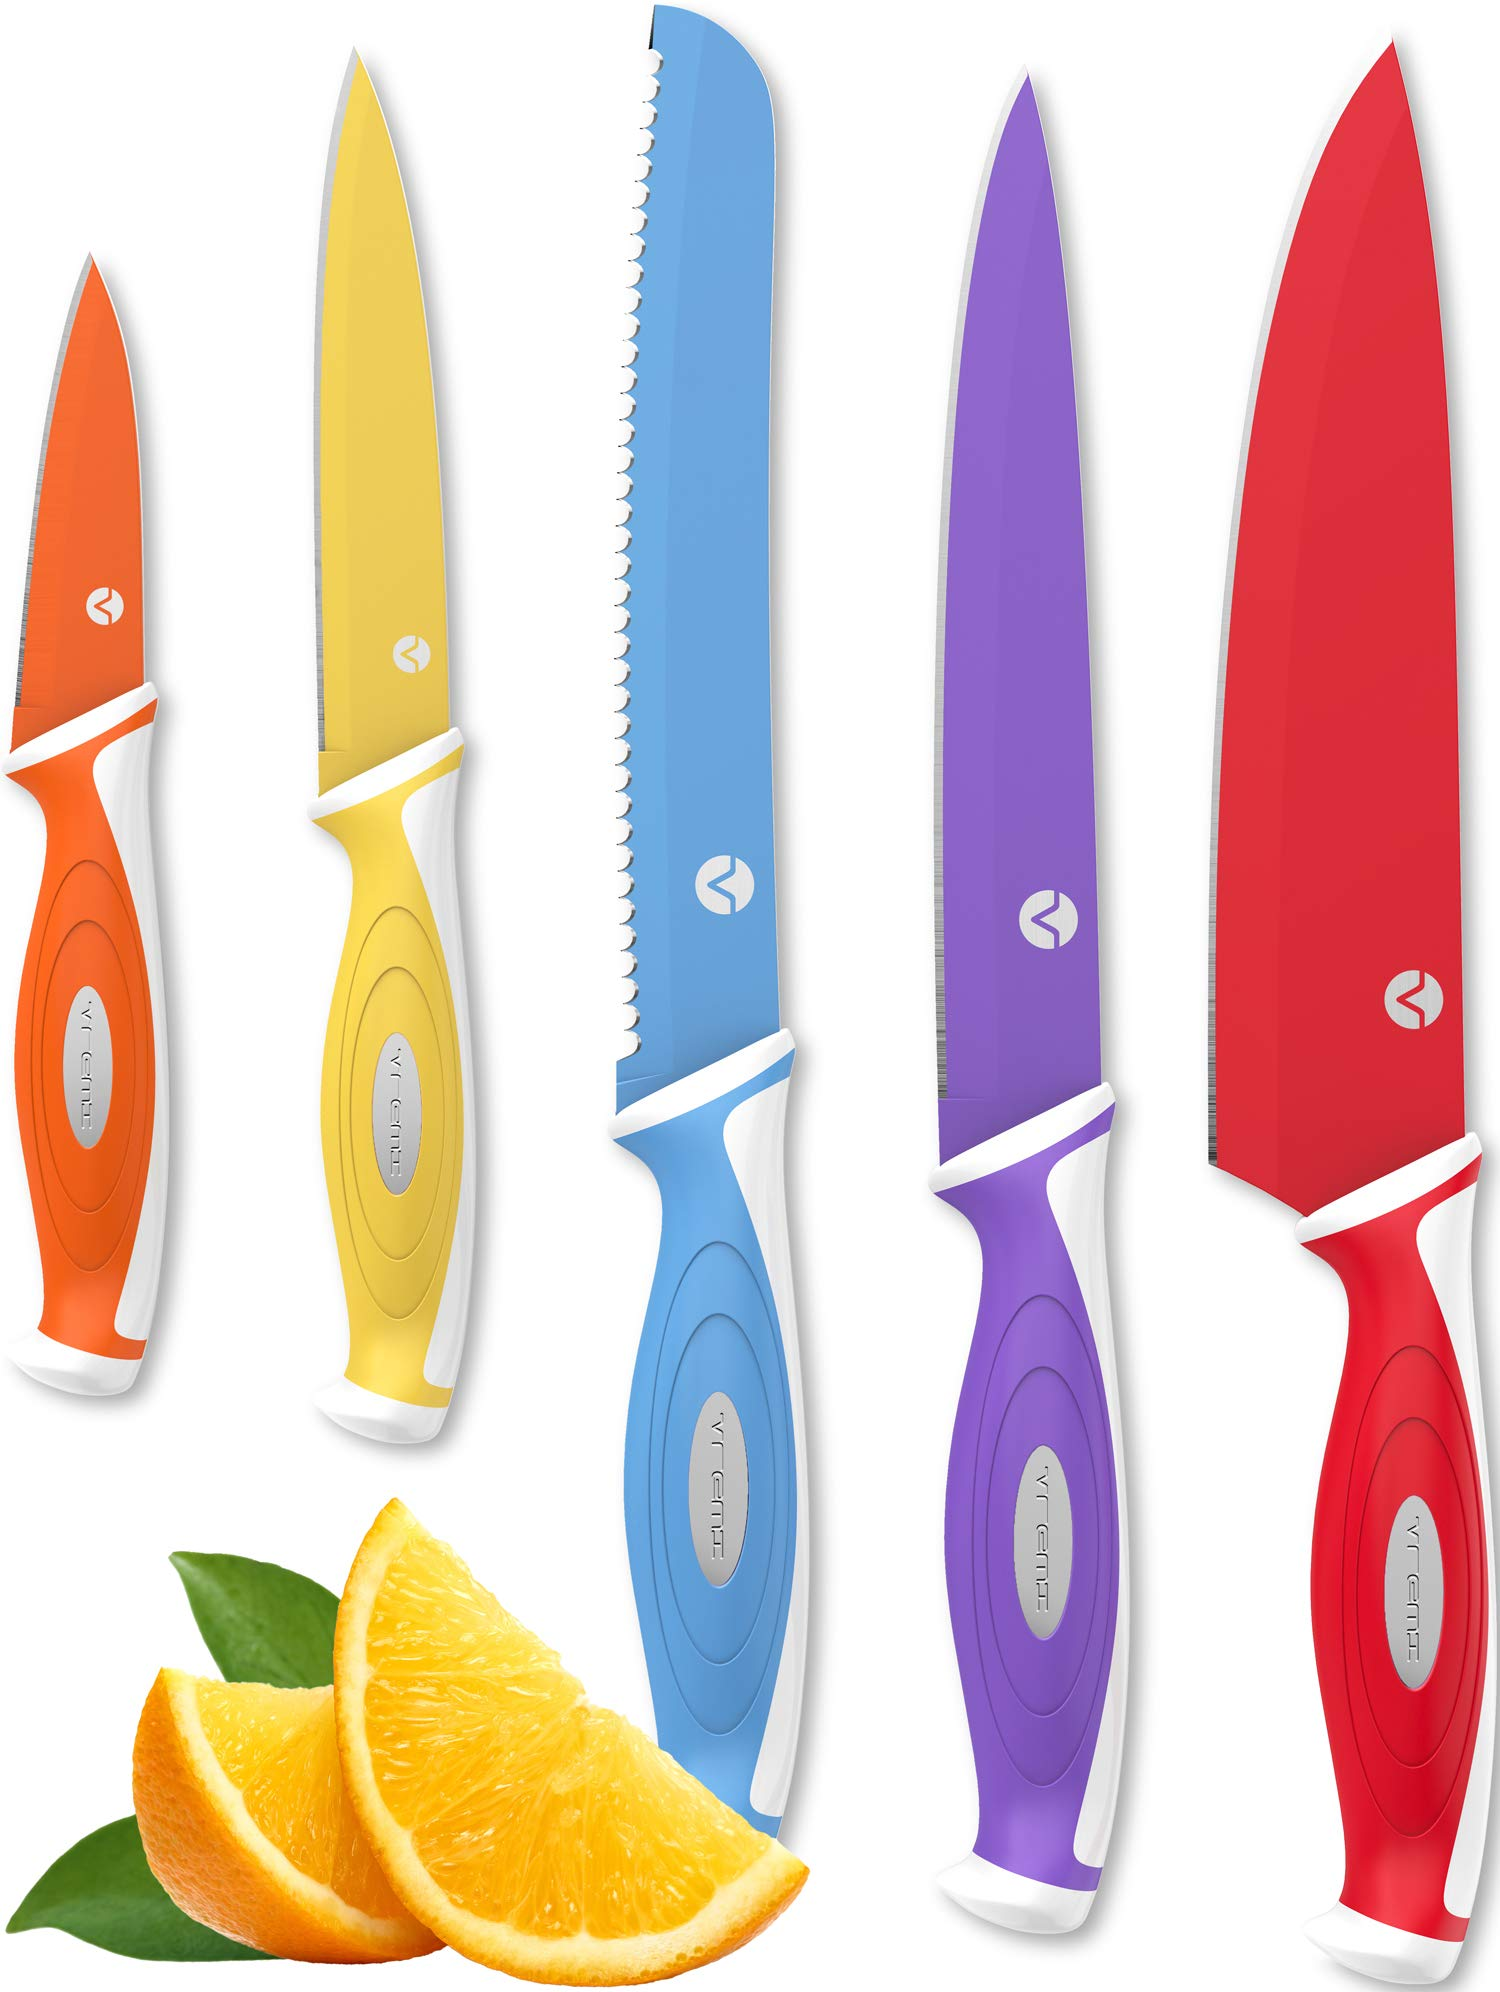 Vremi 10 Piece Colorful Knife Set - 5 Kitchen Knives with 5 Knife Sheath Covers - Chef Knife Sets with Carving Serrated Utility Chef's and Paring Knives - Magnetic Knife Set with Matching Color Case by Vremi